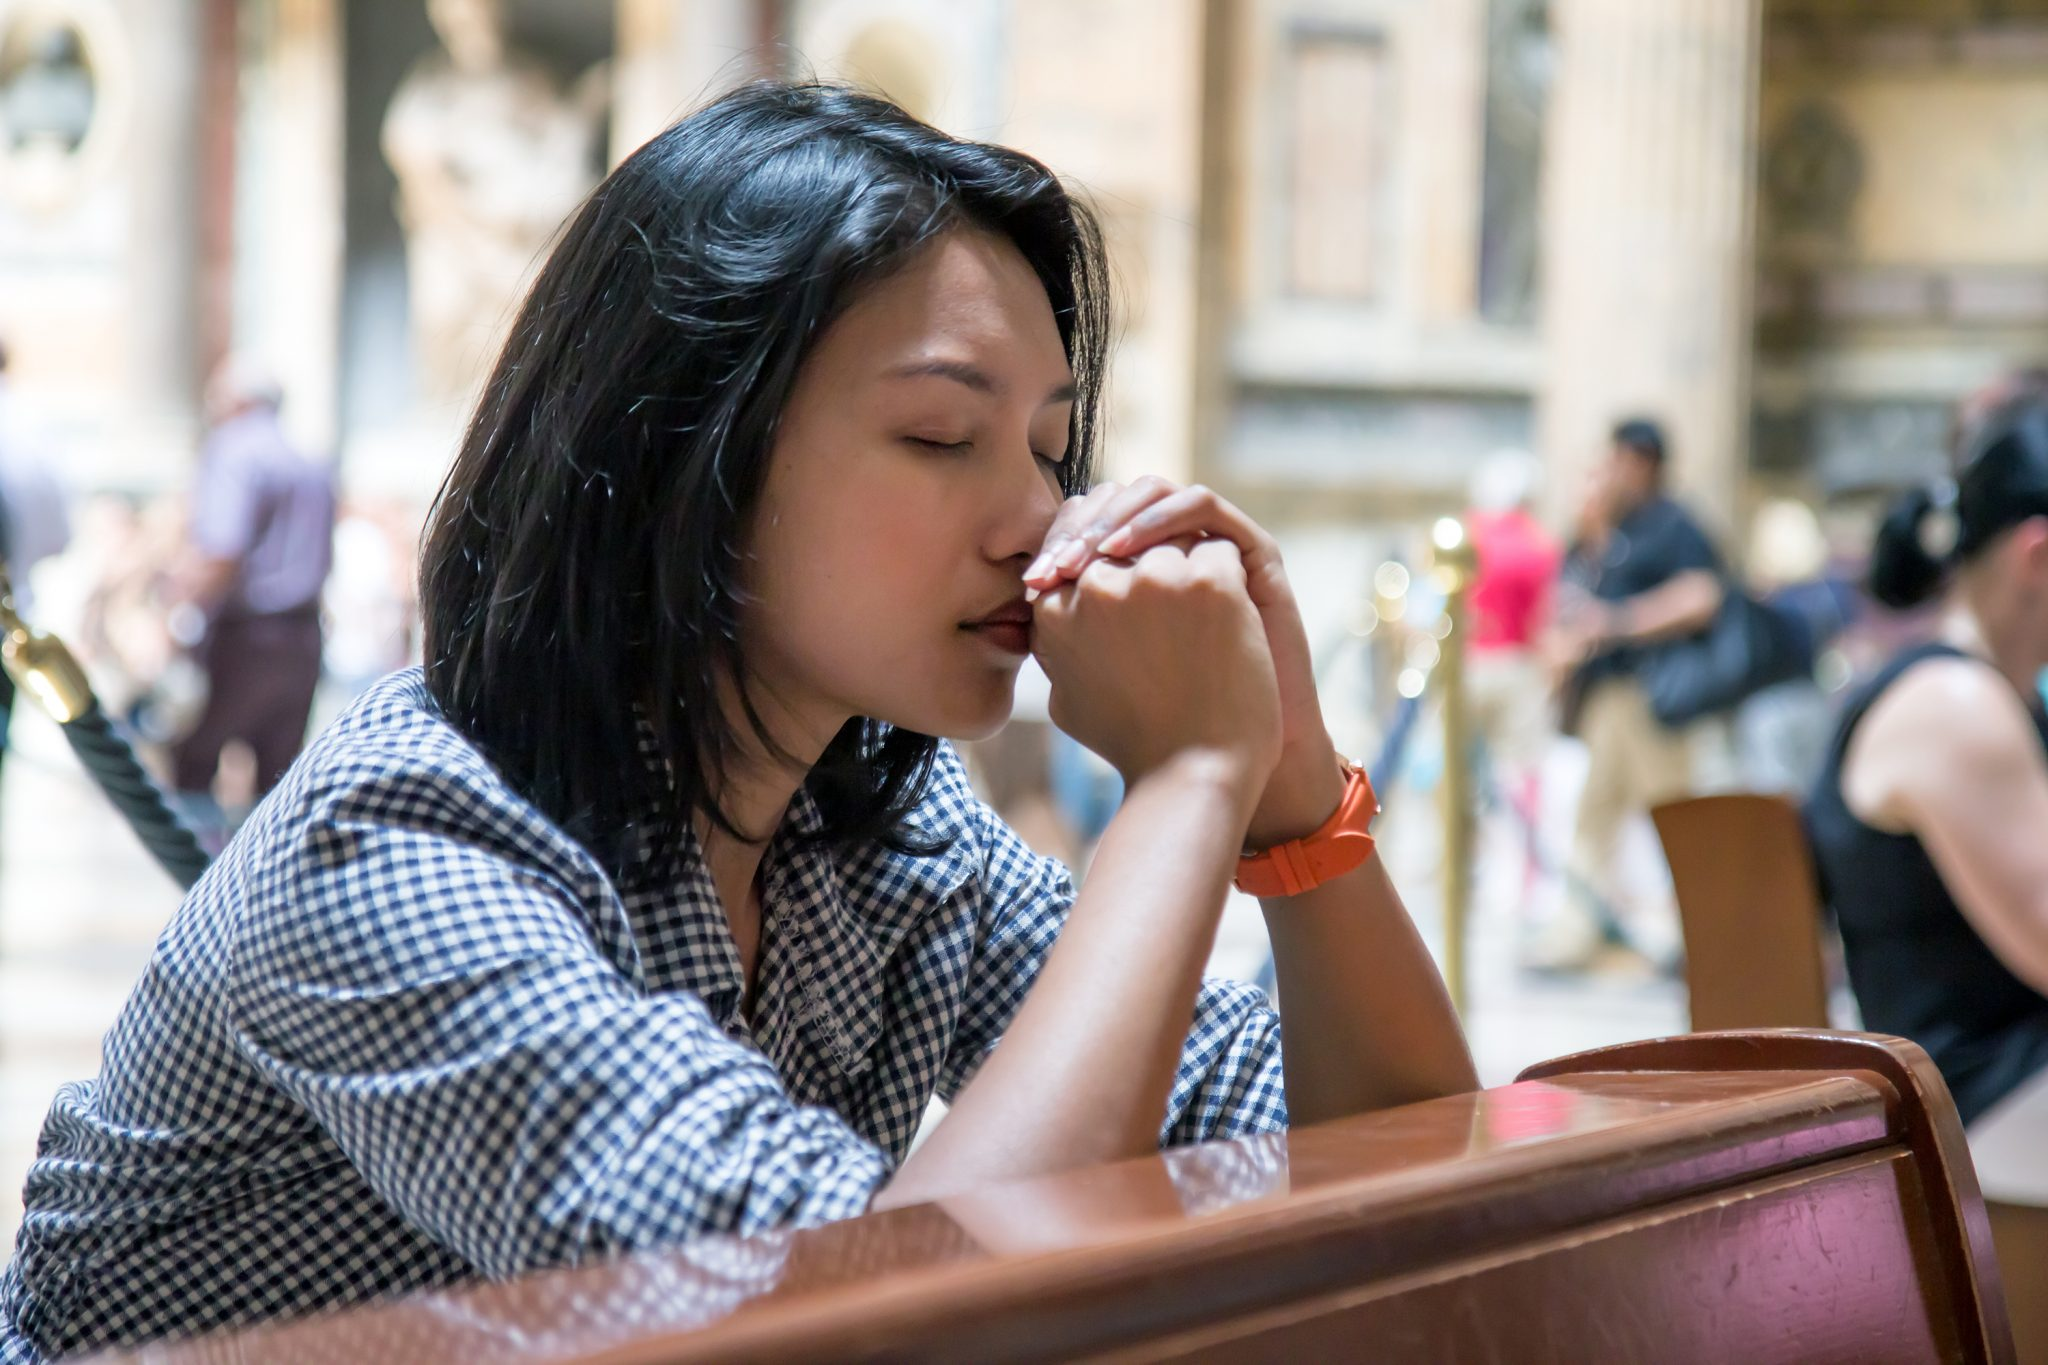 Woman praying in the church. Believers meditates in the cathedral. Spiritual time of prayer.